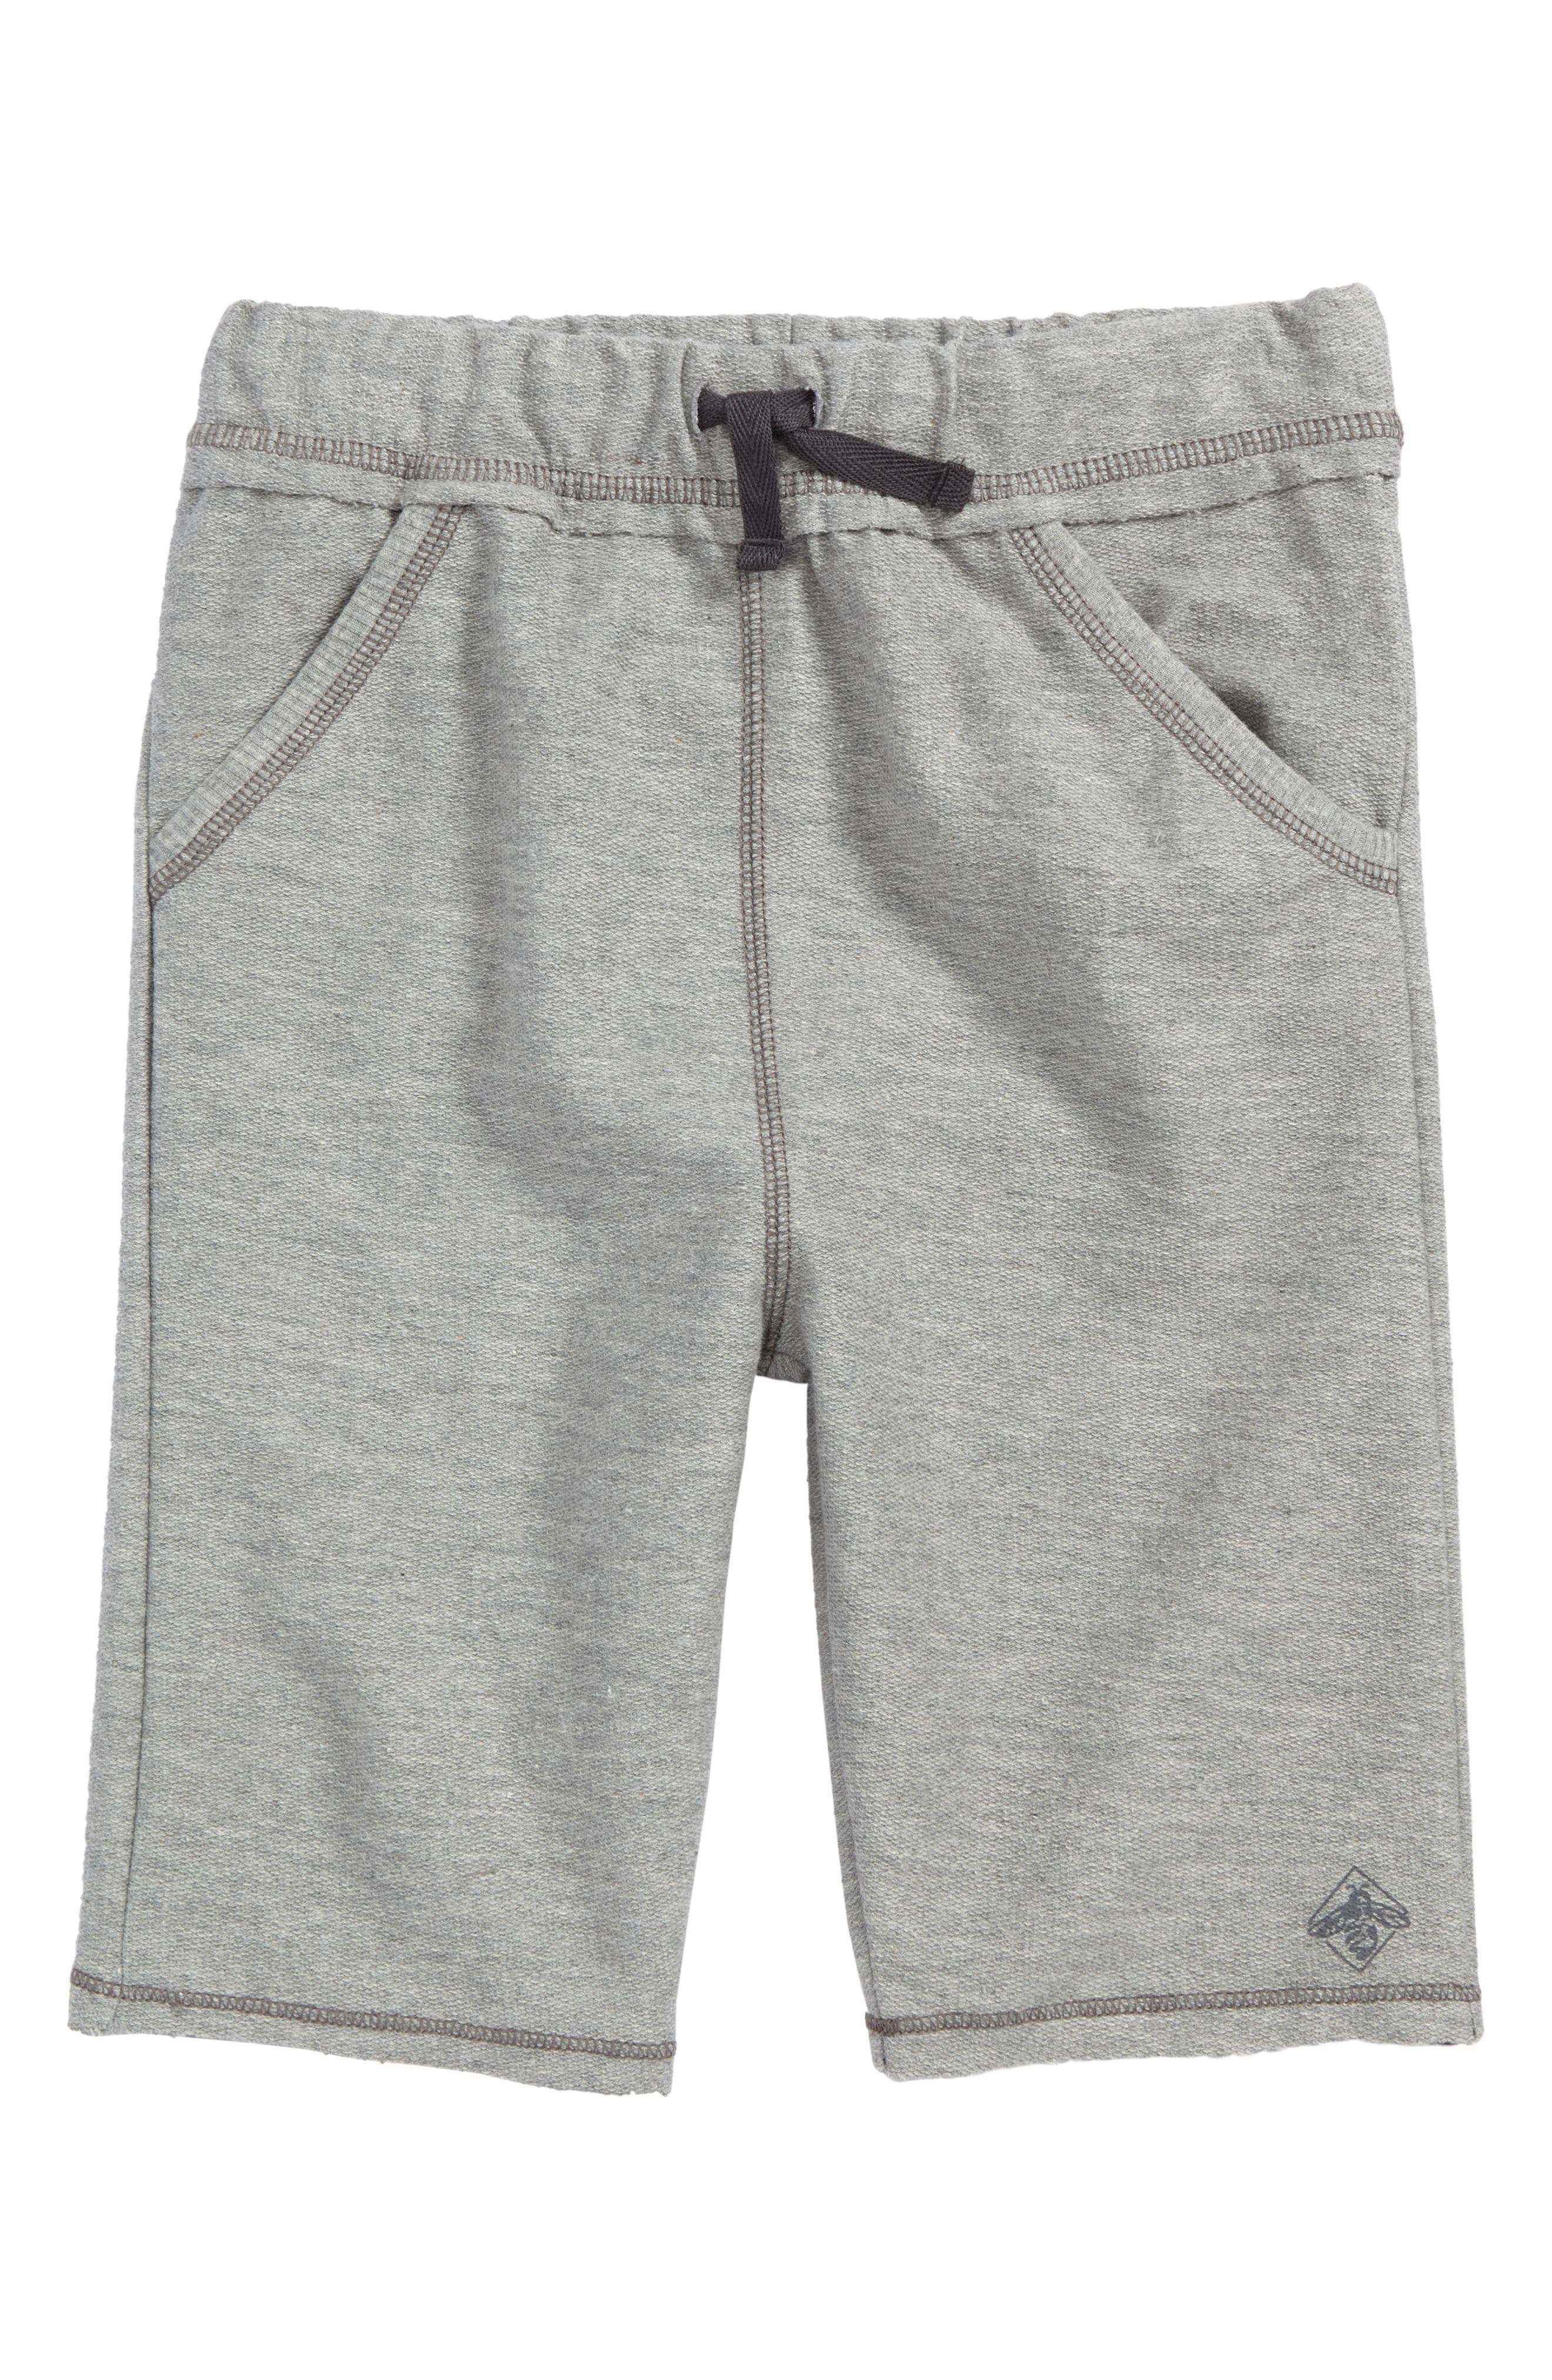 Alternate Image 1 Selected - Burt's Bees Baby Organic French Terry Cotton Sweatpants (Toddler Boys & Little Boys)